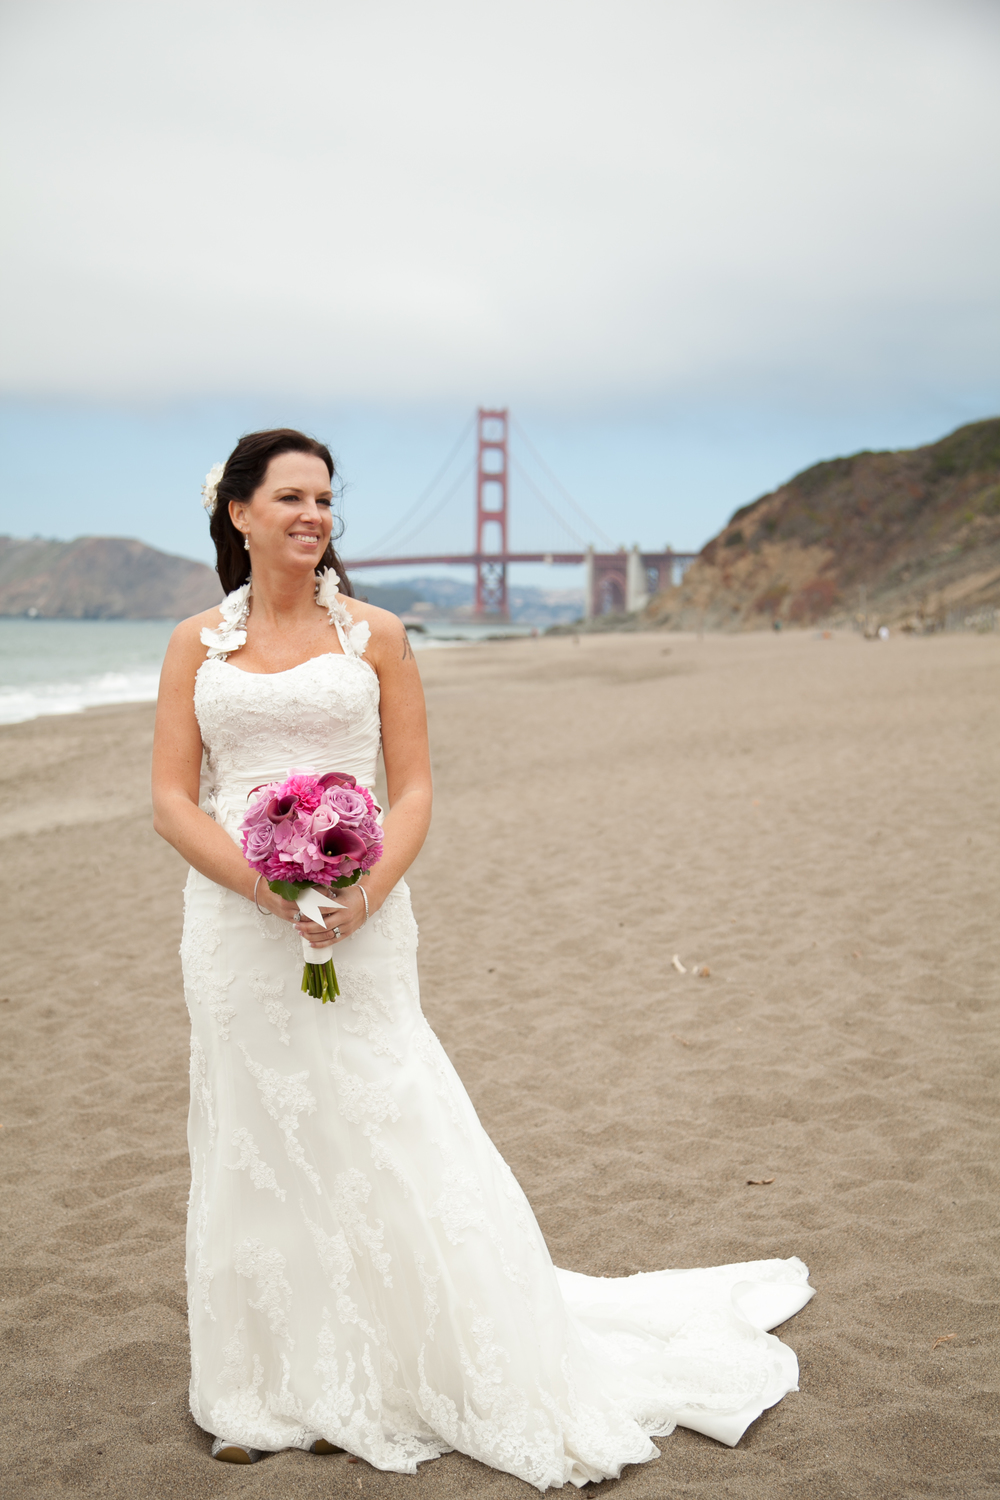 Baker Beach Elopement in San Francisco-Meo Baaklini063.jpg